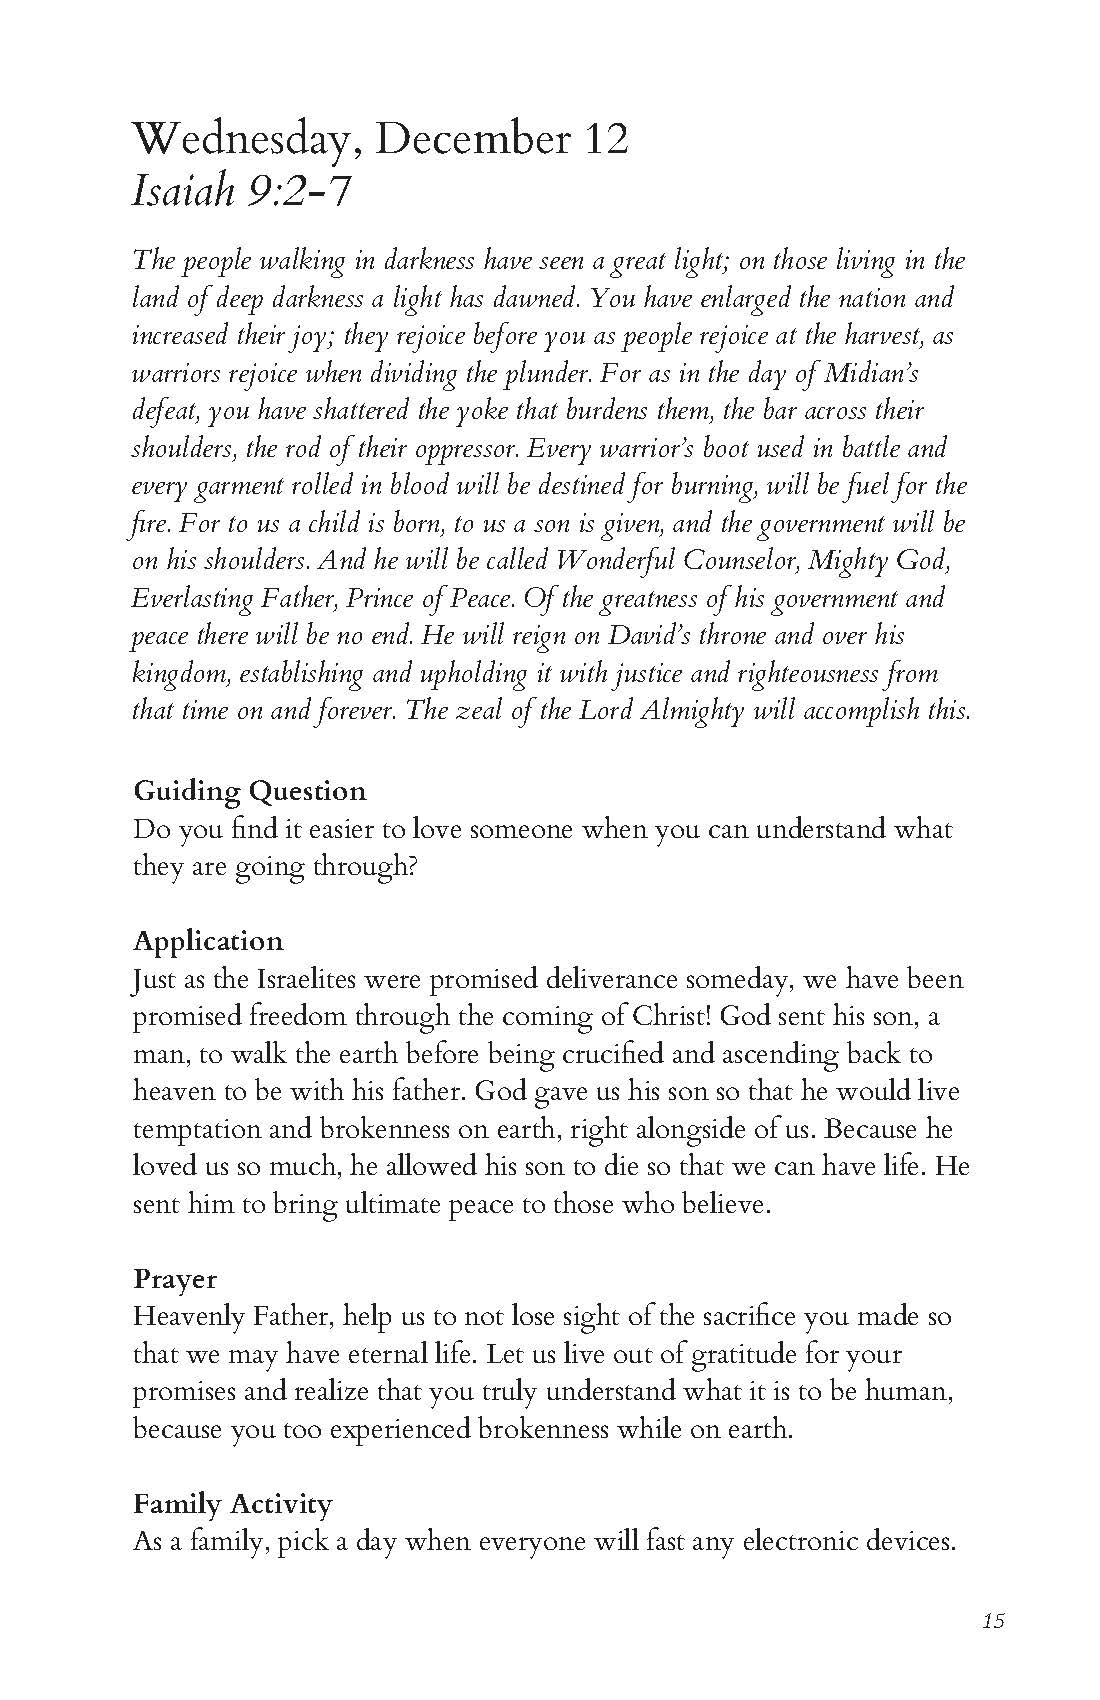 Final Advent Guide - for digital publication_Page_17.jpg